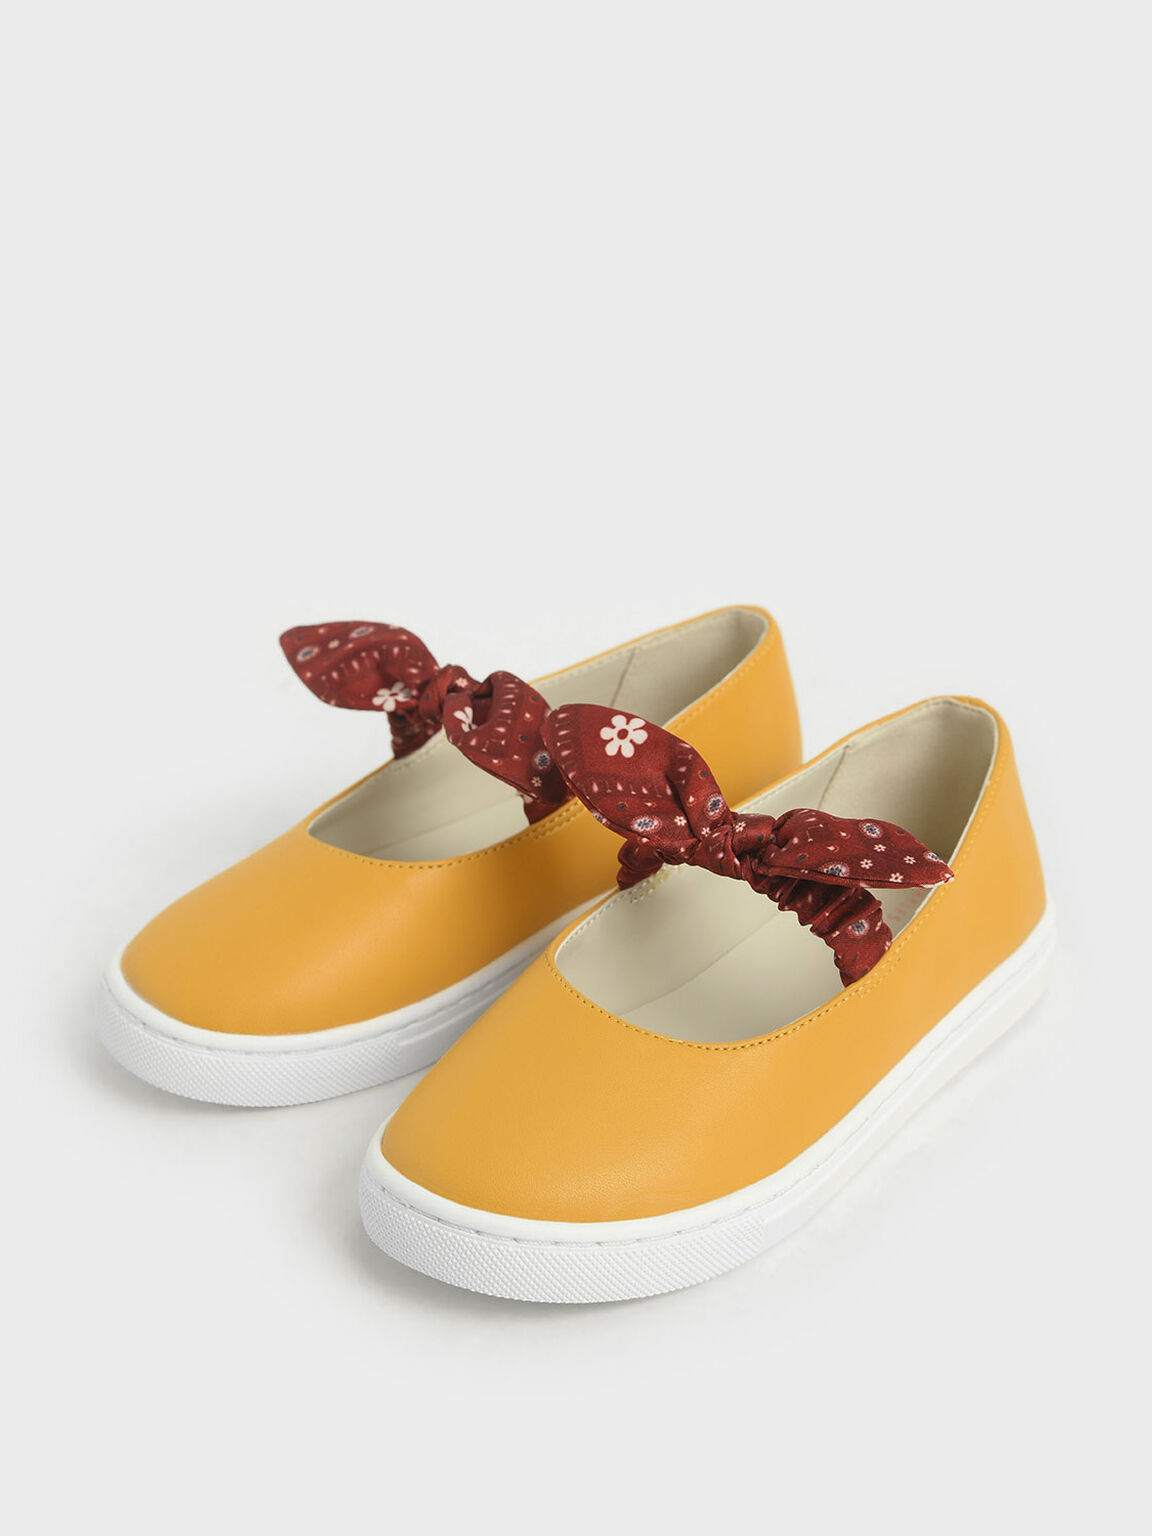 Summer 2020 Responsible Collection: Girls' Knotted Bandana Print Slip-On Sneakers, Yellow, hi-res